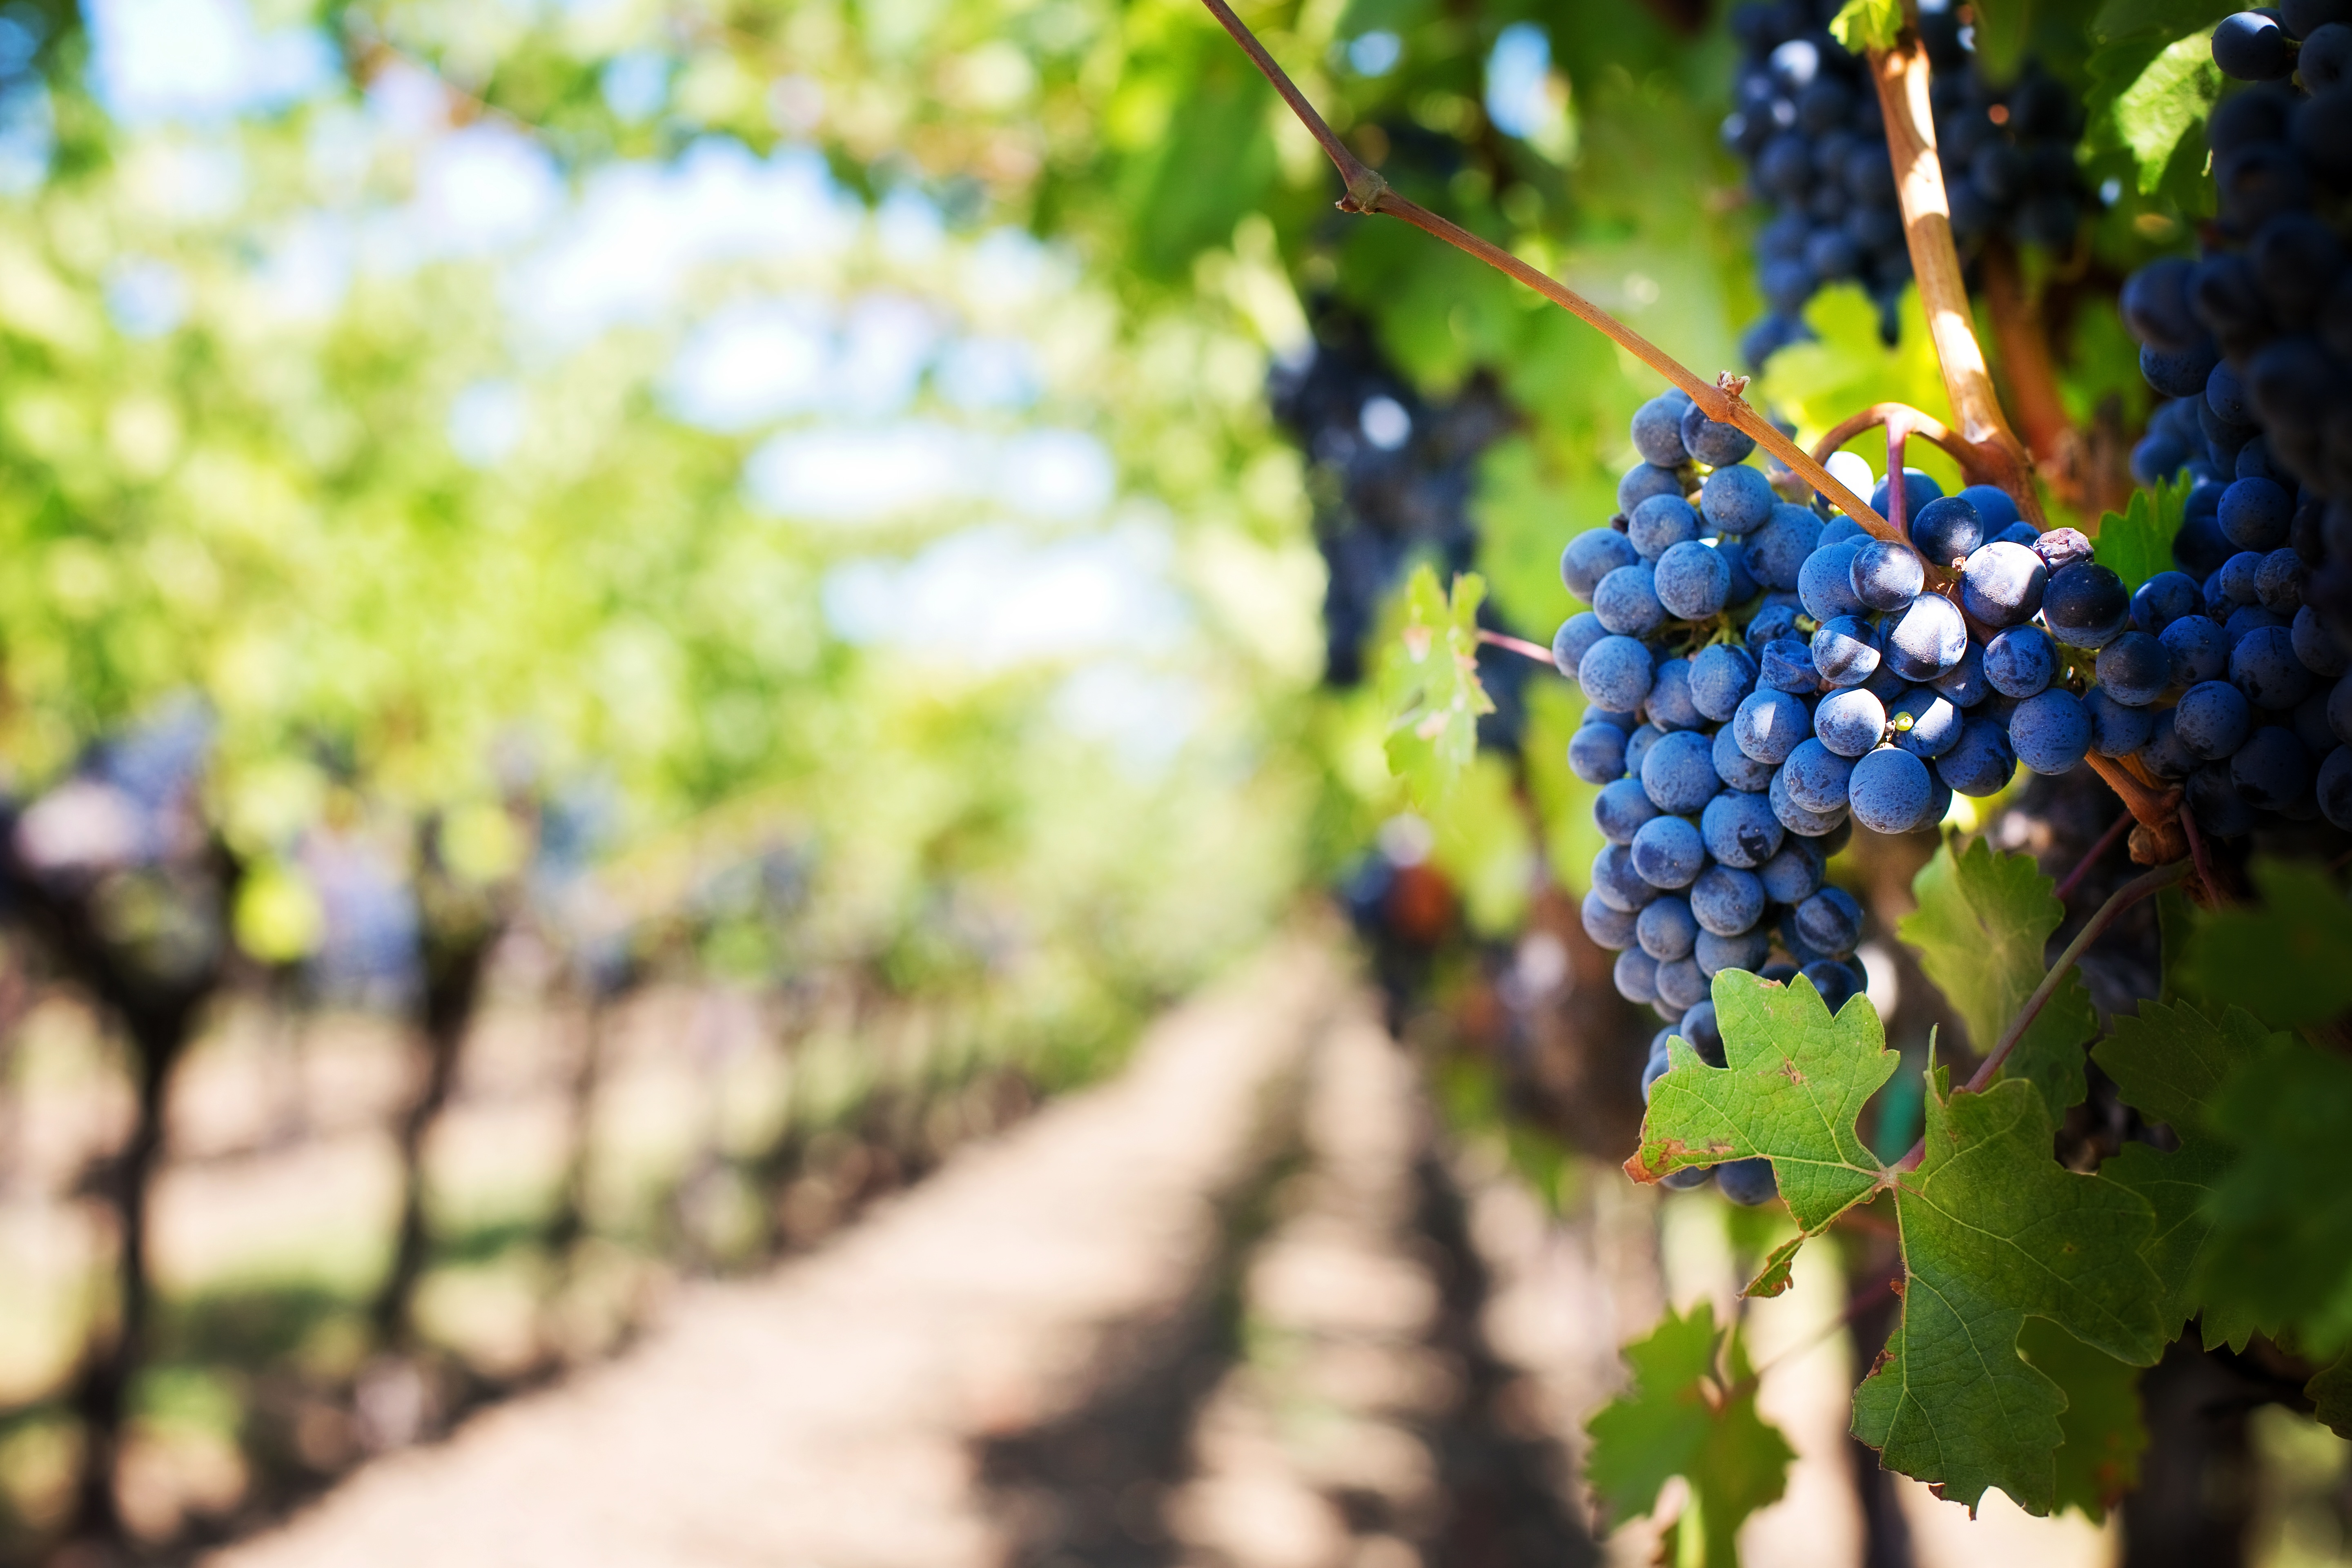 Cluster of wine grapes hanging on a wine. Fruit can be protected from oxidation even before it is harvested.